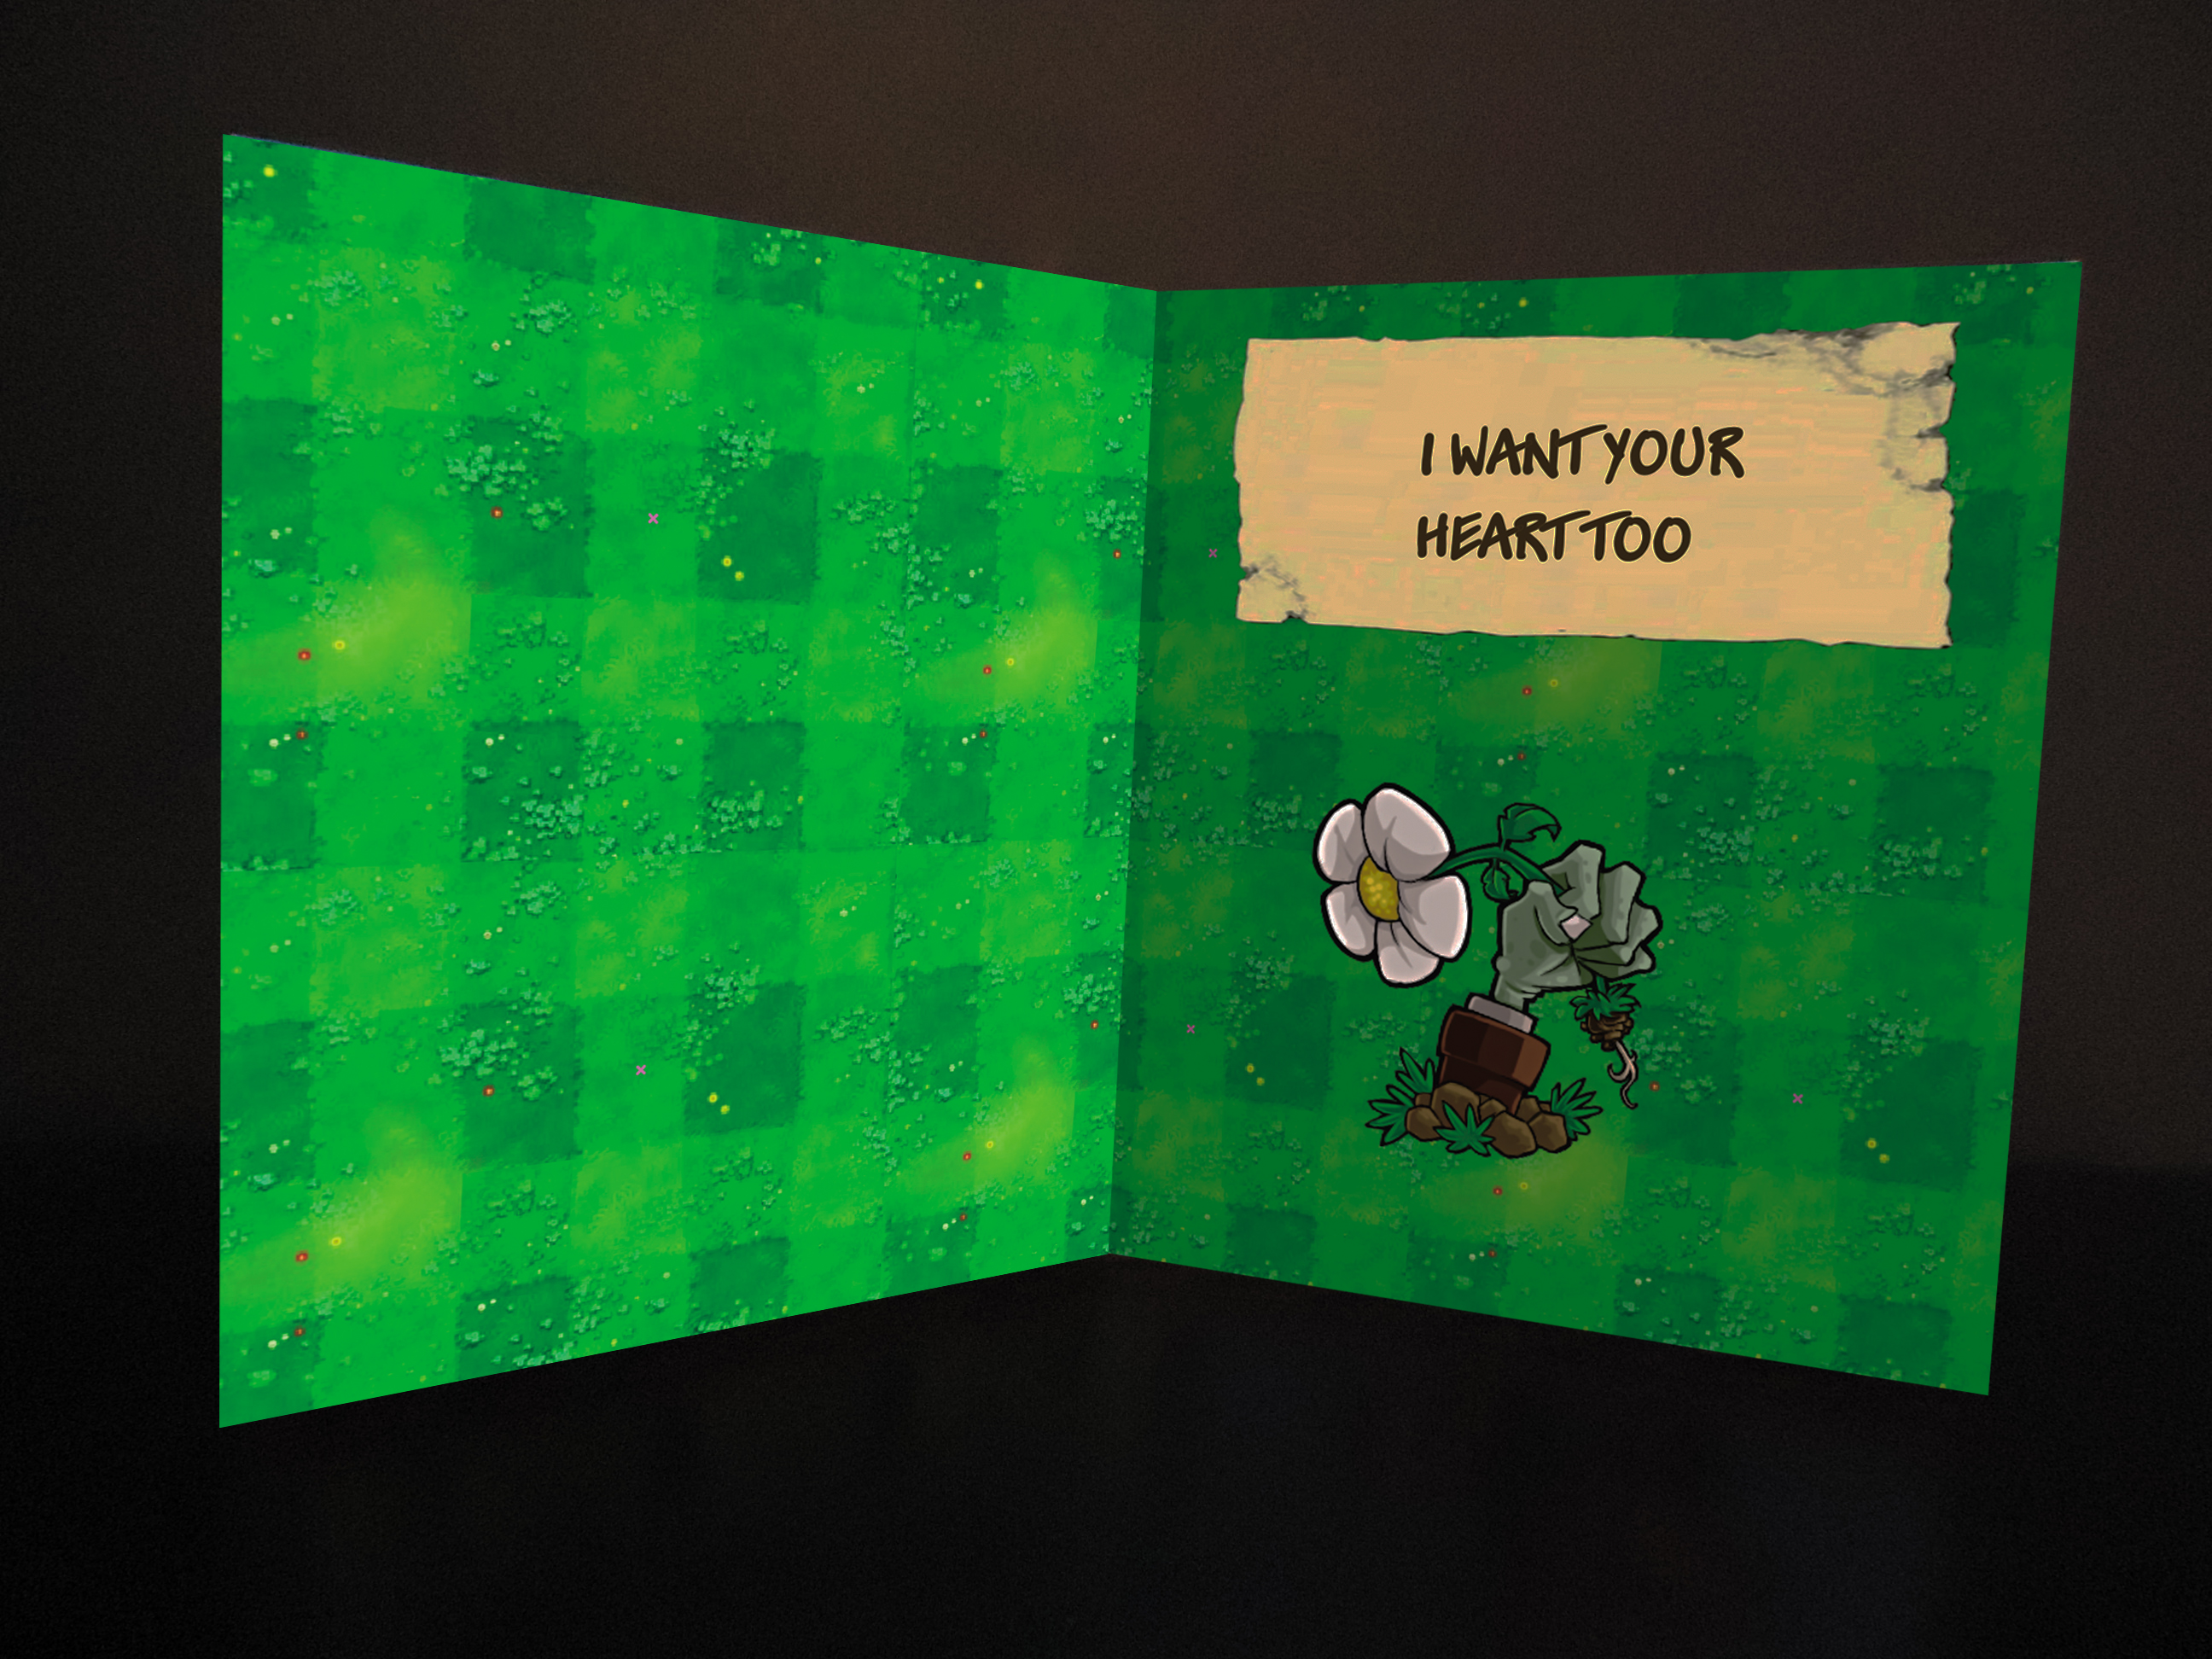 Plants vs zombies powerpoint templates free download game plants vs zombies free latest on this occasion i will share a game that is very popular namely plants vs download seo friendly free blog toneelgroepblik Image collections